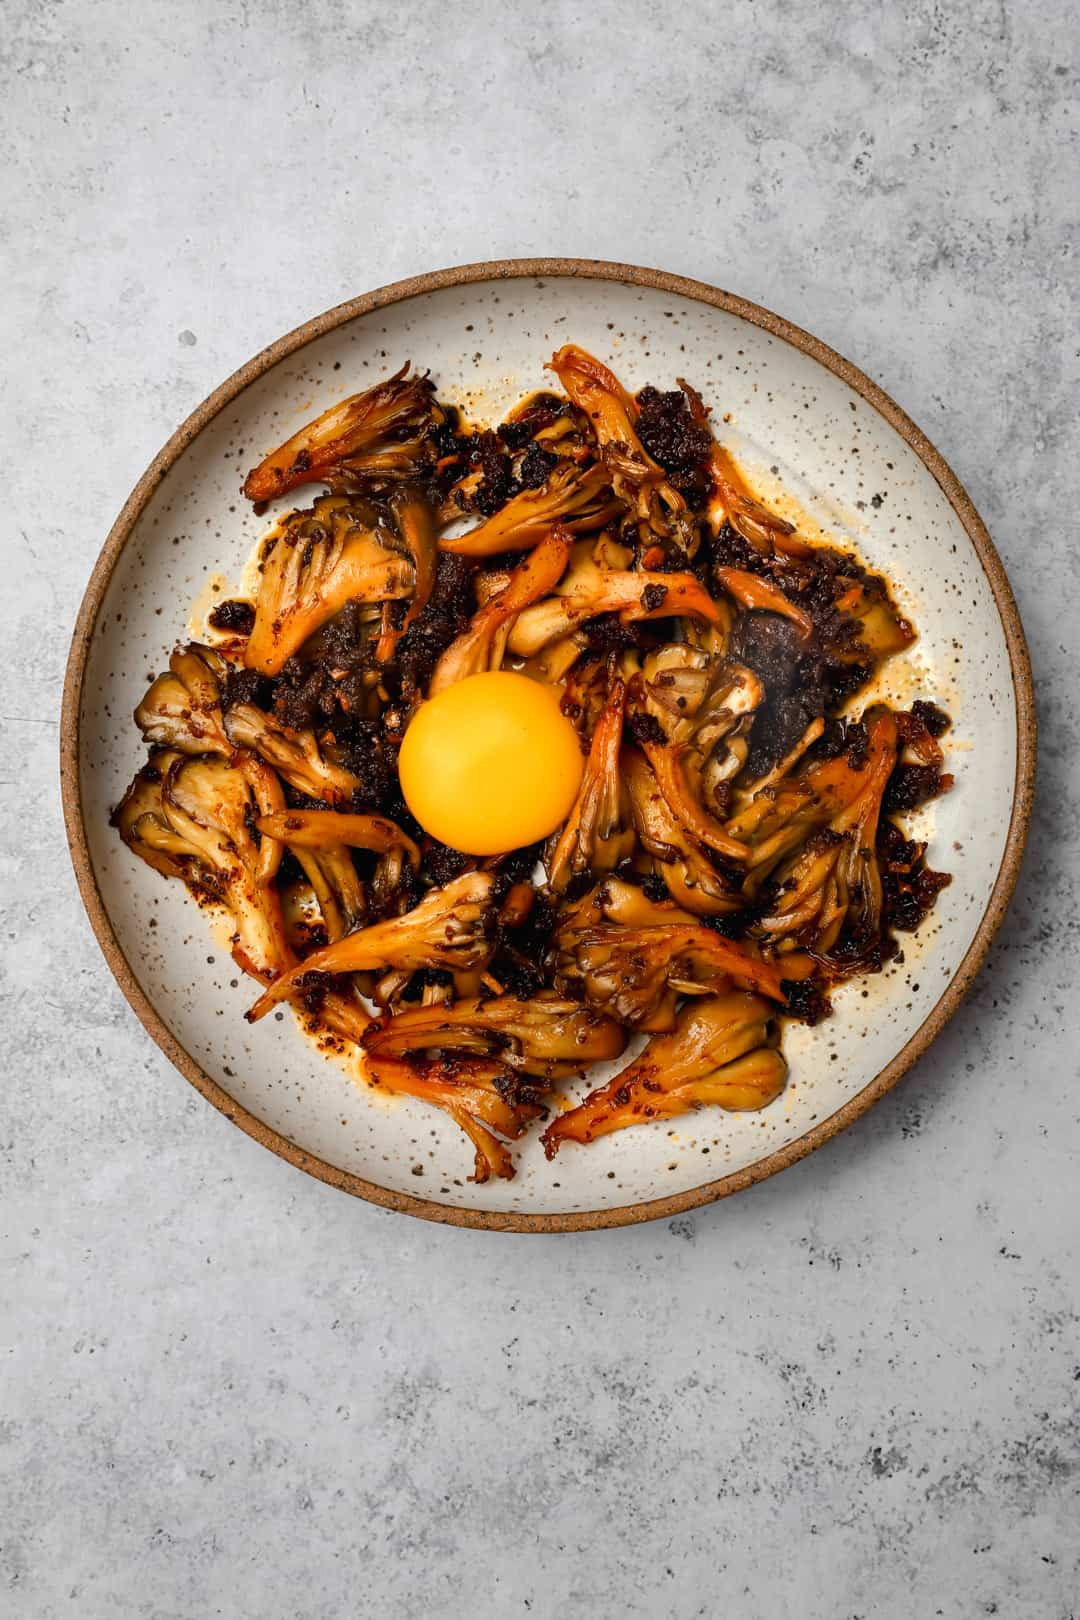 Hen of the wood mushrooms with an egg yolk on a plate